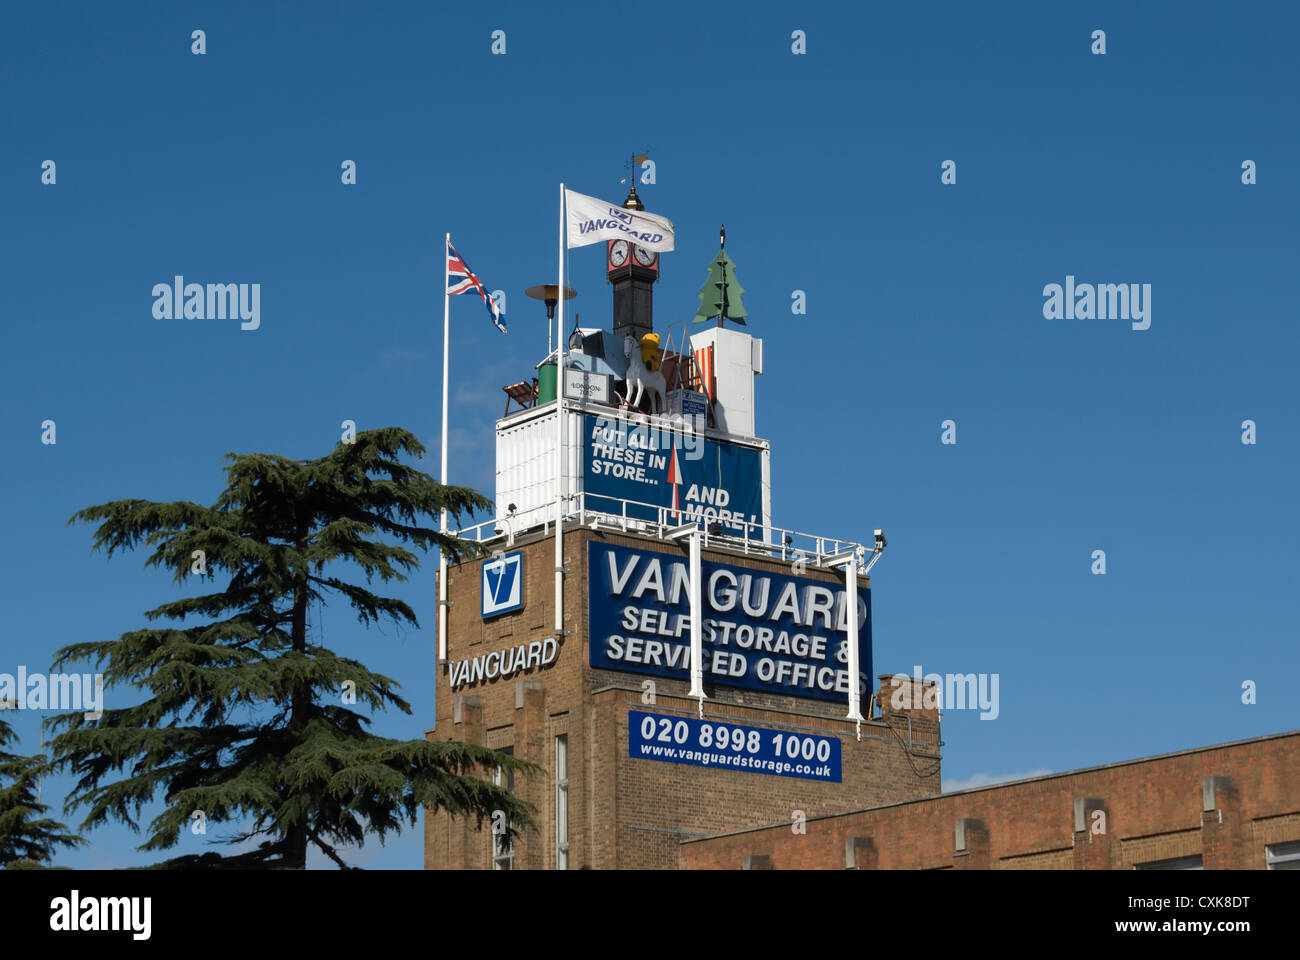 Branch Of Vanguard Self Storage With Pseudo Household Items Placed On Roof  To Be Visible From Road, Perivale, London, England